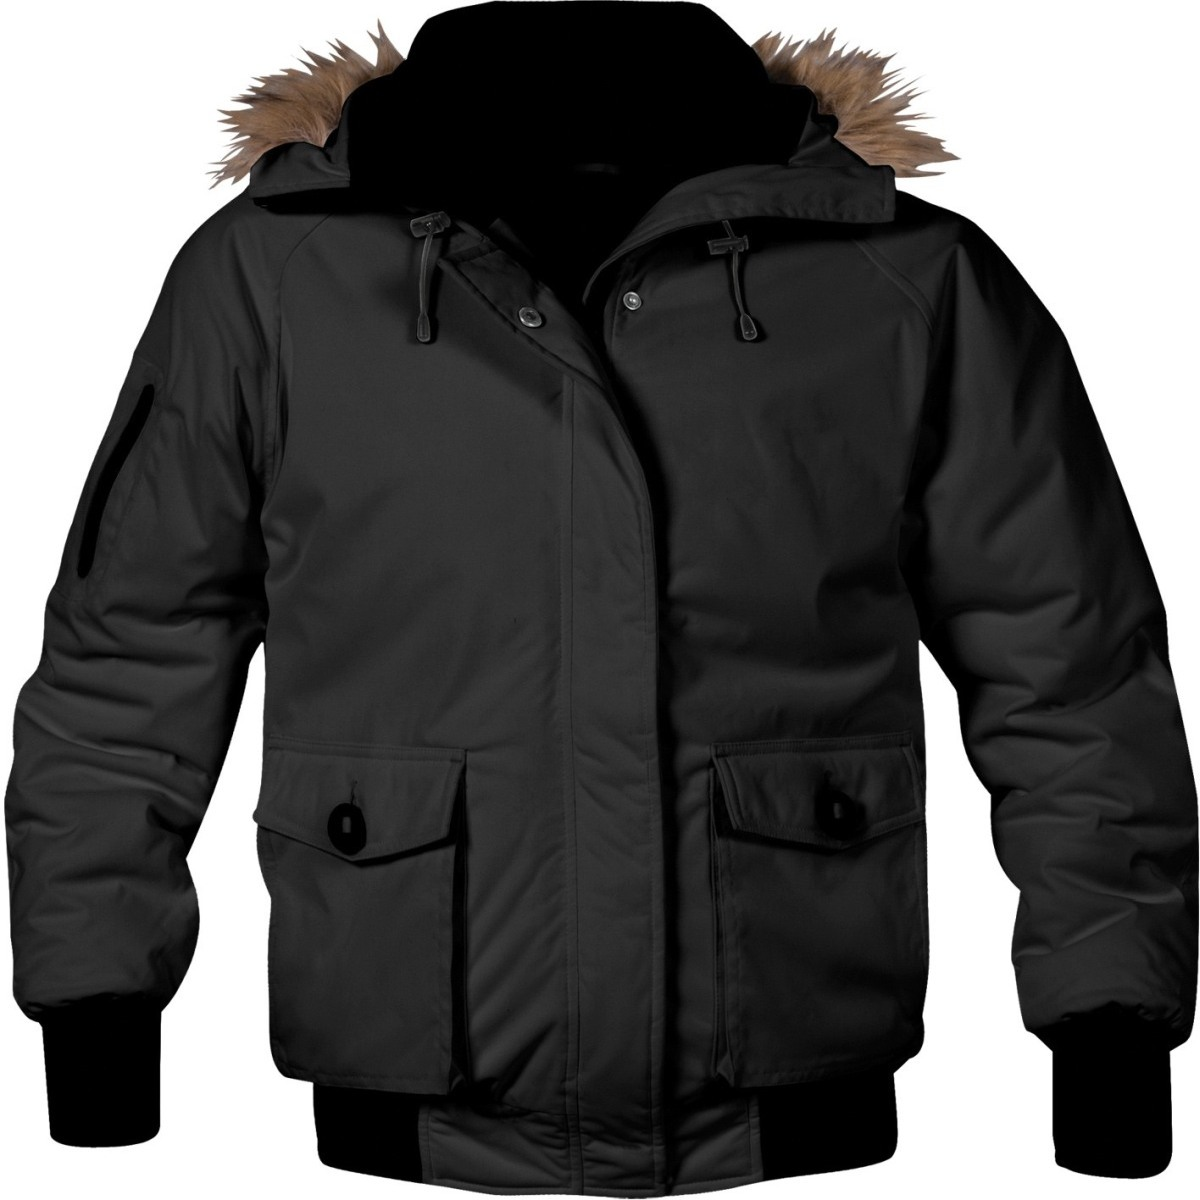 78bd57763 Buy Women's Expedition Down Jacket - StormTech Online at Best price - AB